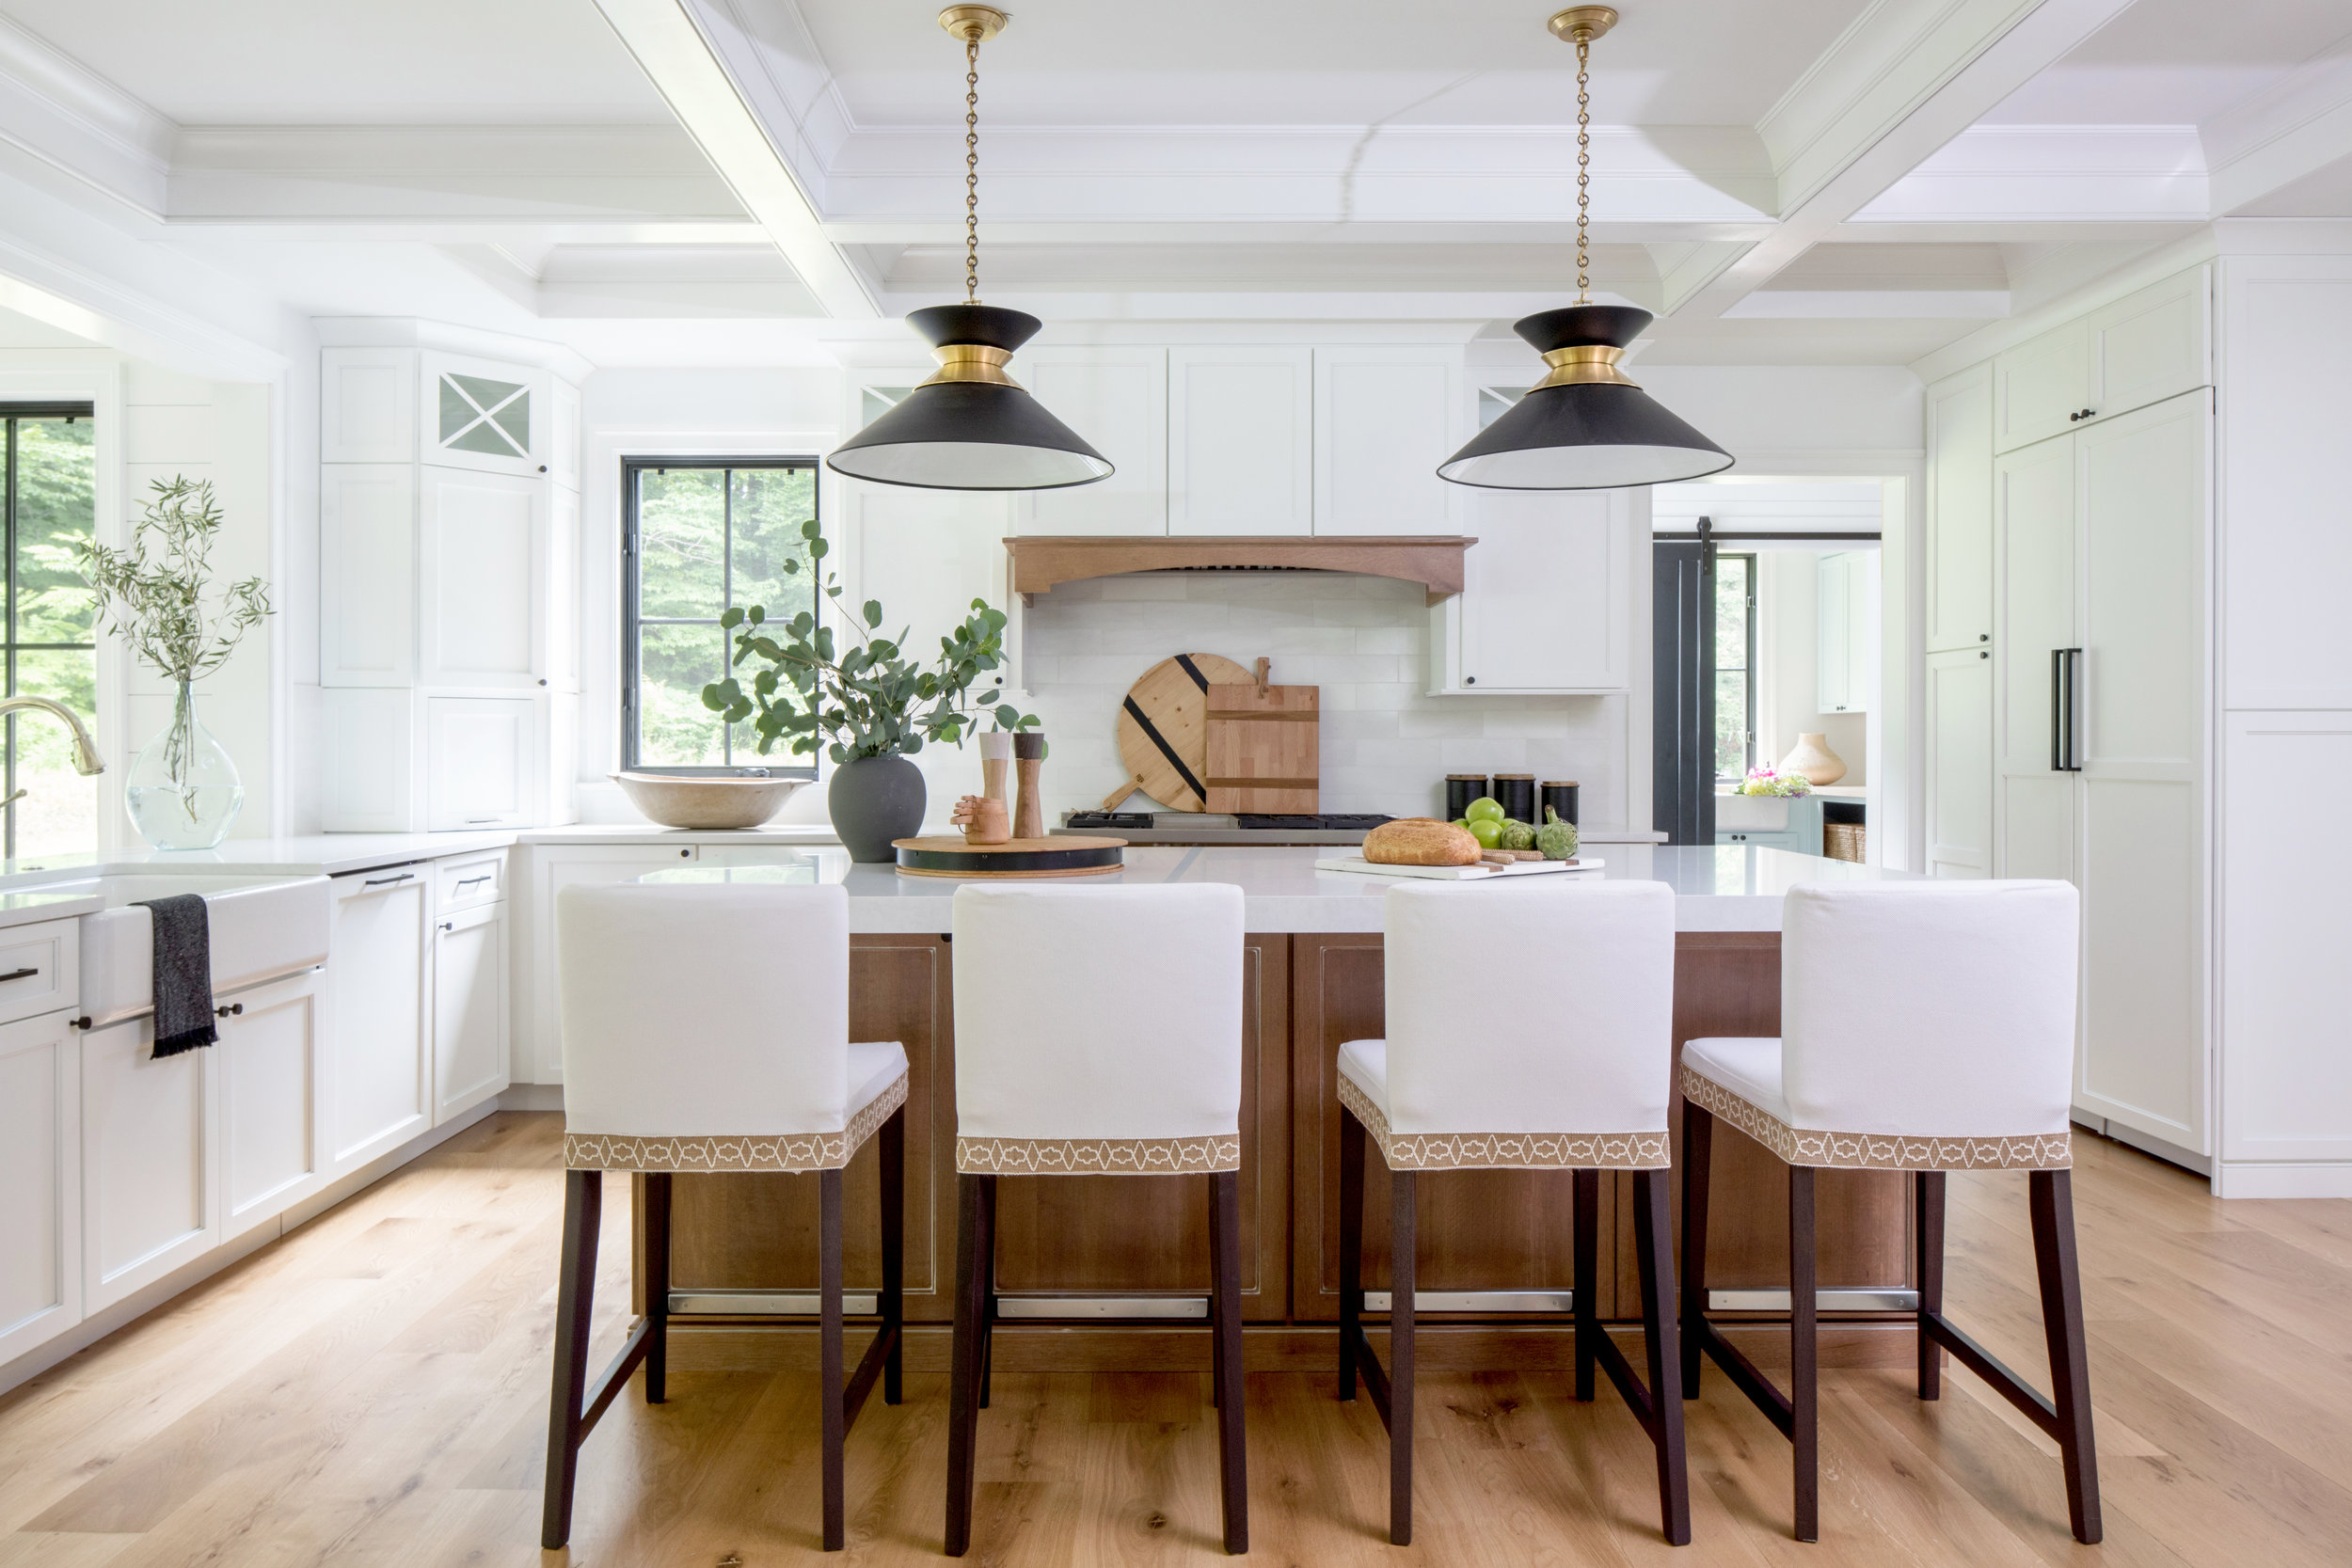 House Tour-  I Love This House's Modern Twist on Classic Traditional Style 6.jpg